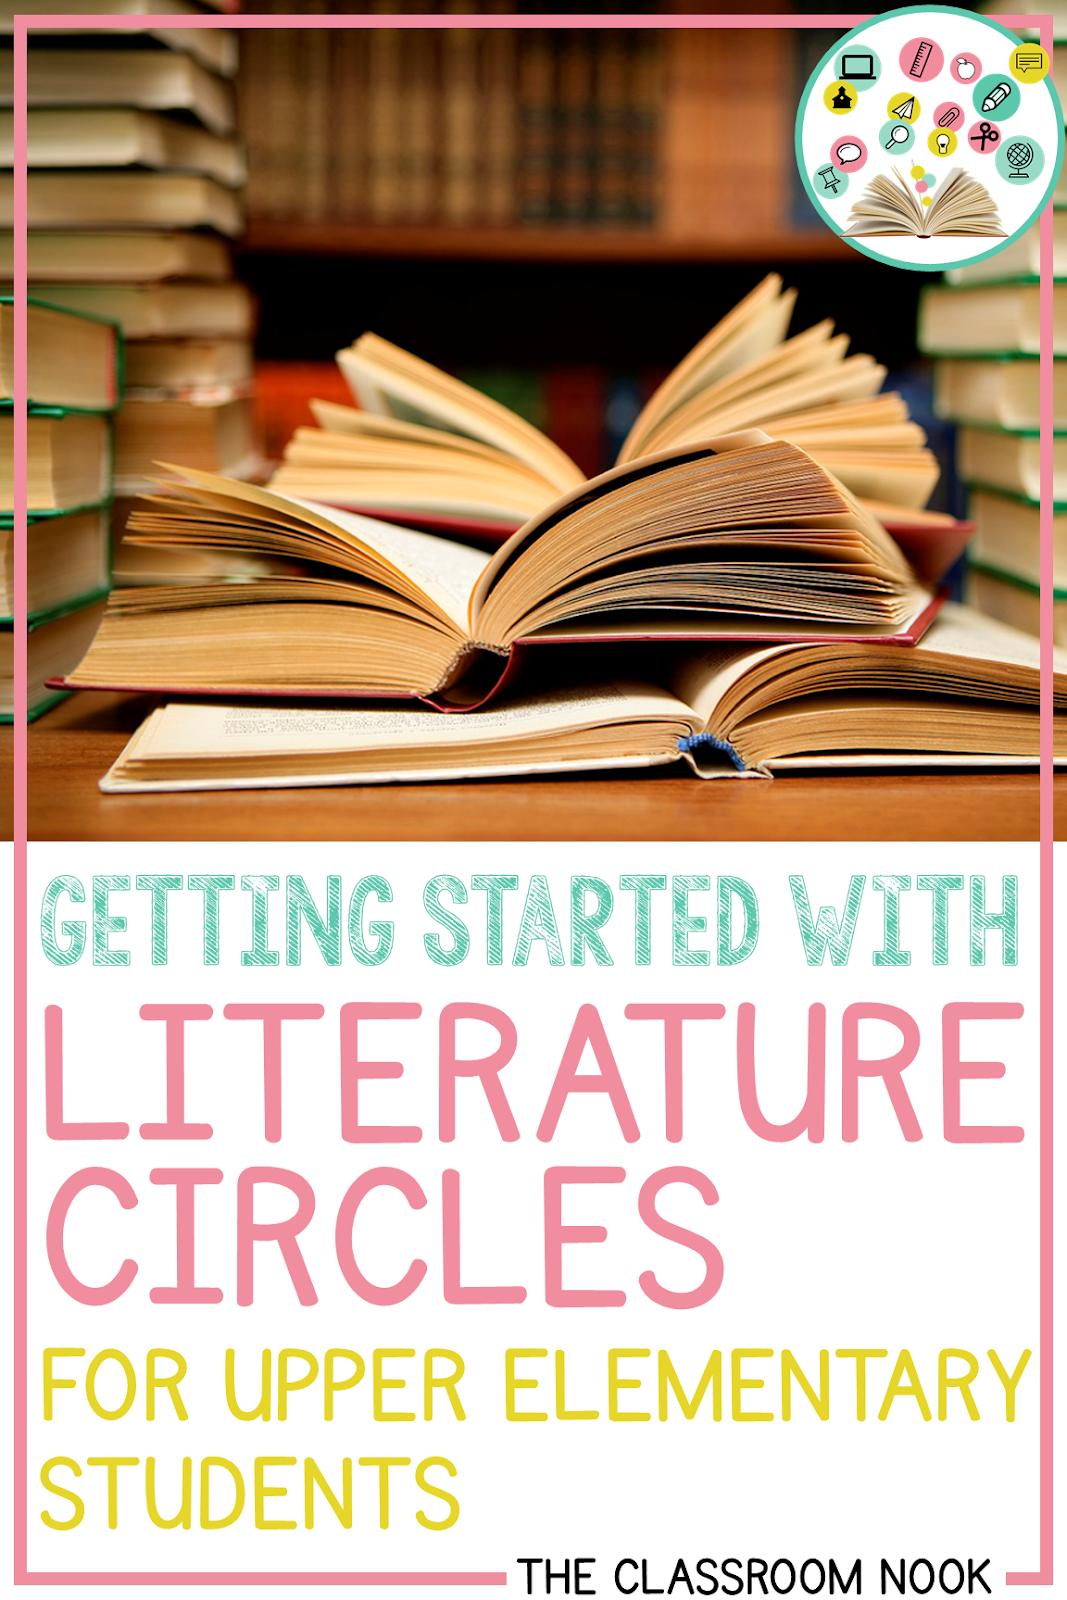 New to literature circles in the upper elementary classroom?  Check out this post with easy ways you can use literature circles effectively with your students!  #literaturecircles #teachingreading